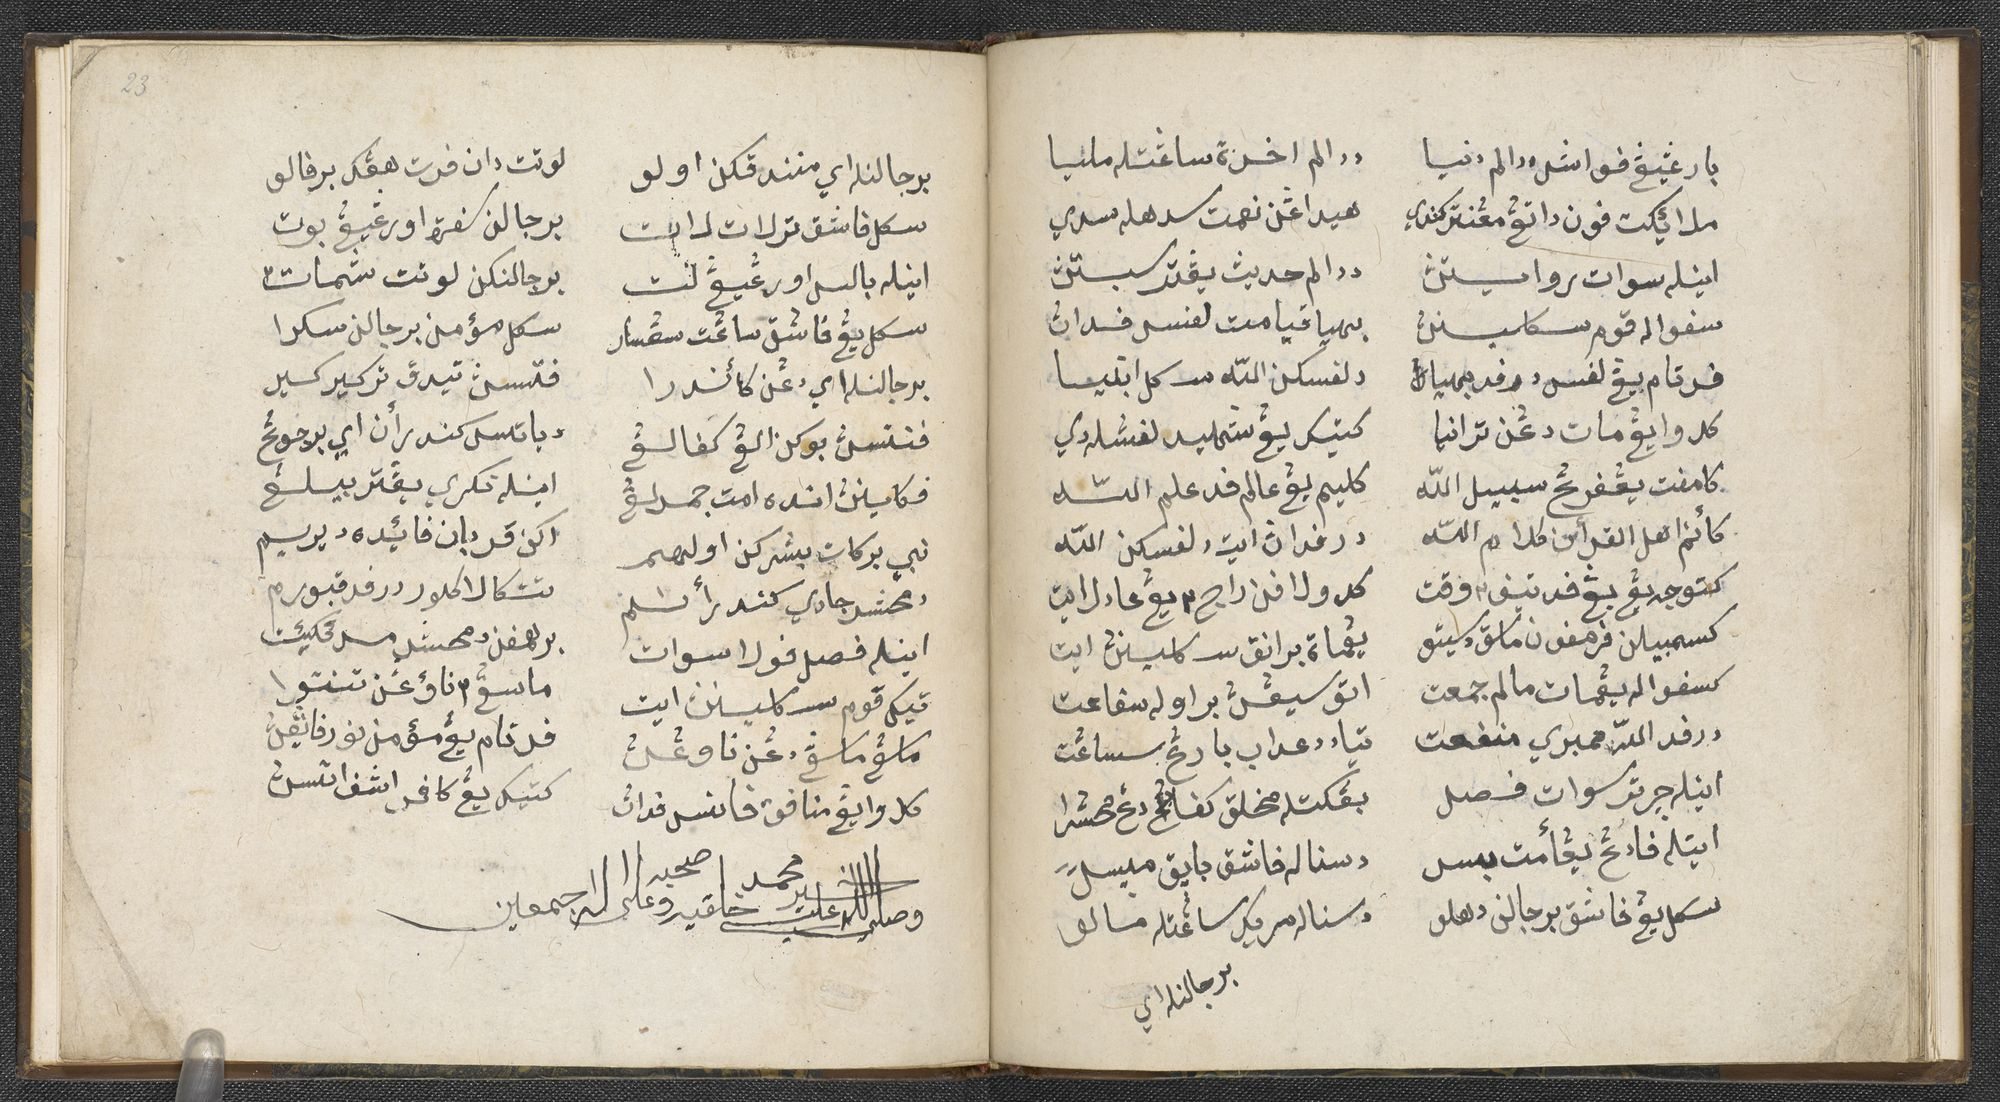 Asian and African studies blog: Digitisation